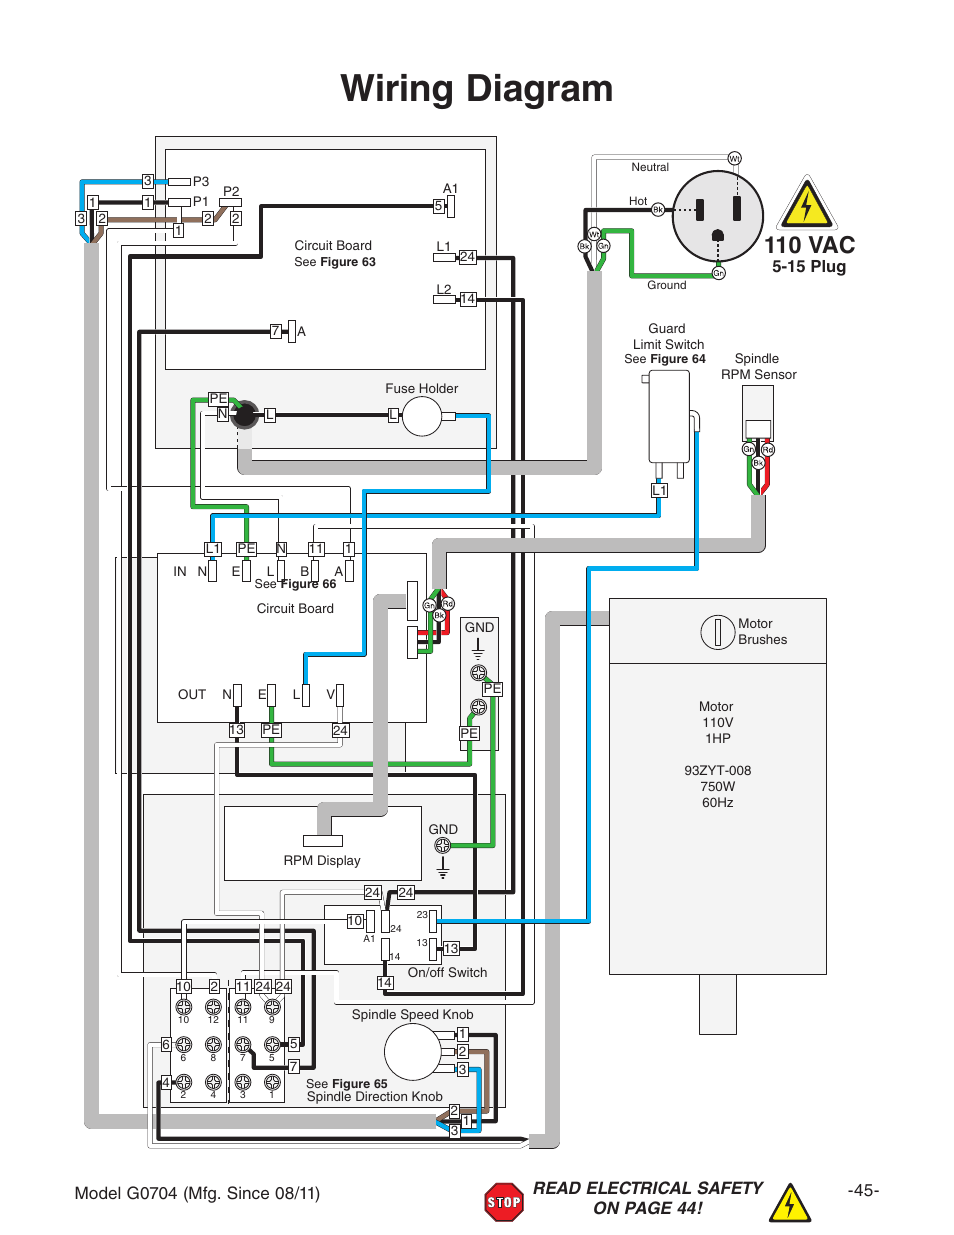 Wiring Diagram  110 Vac